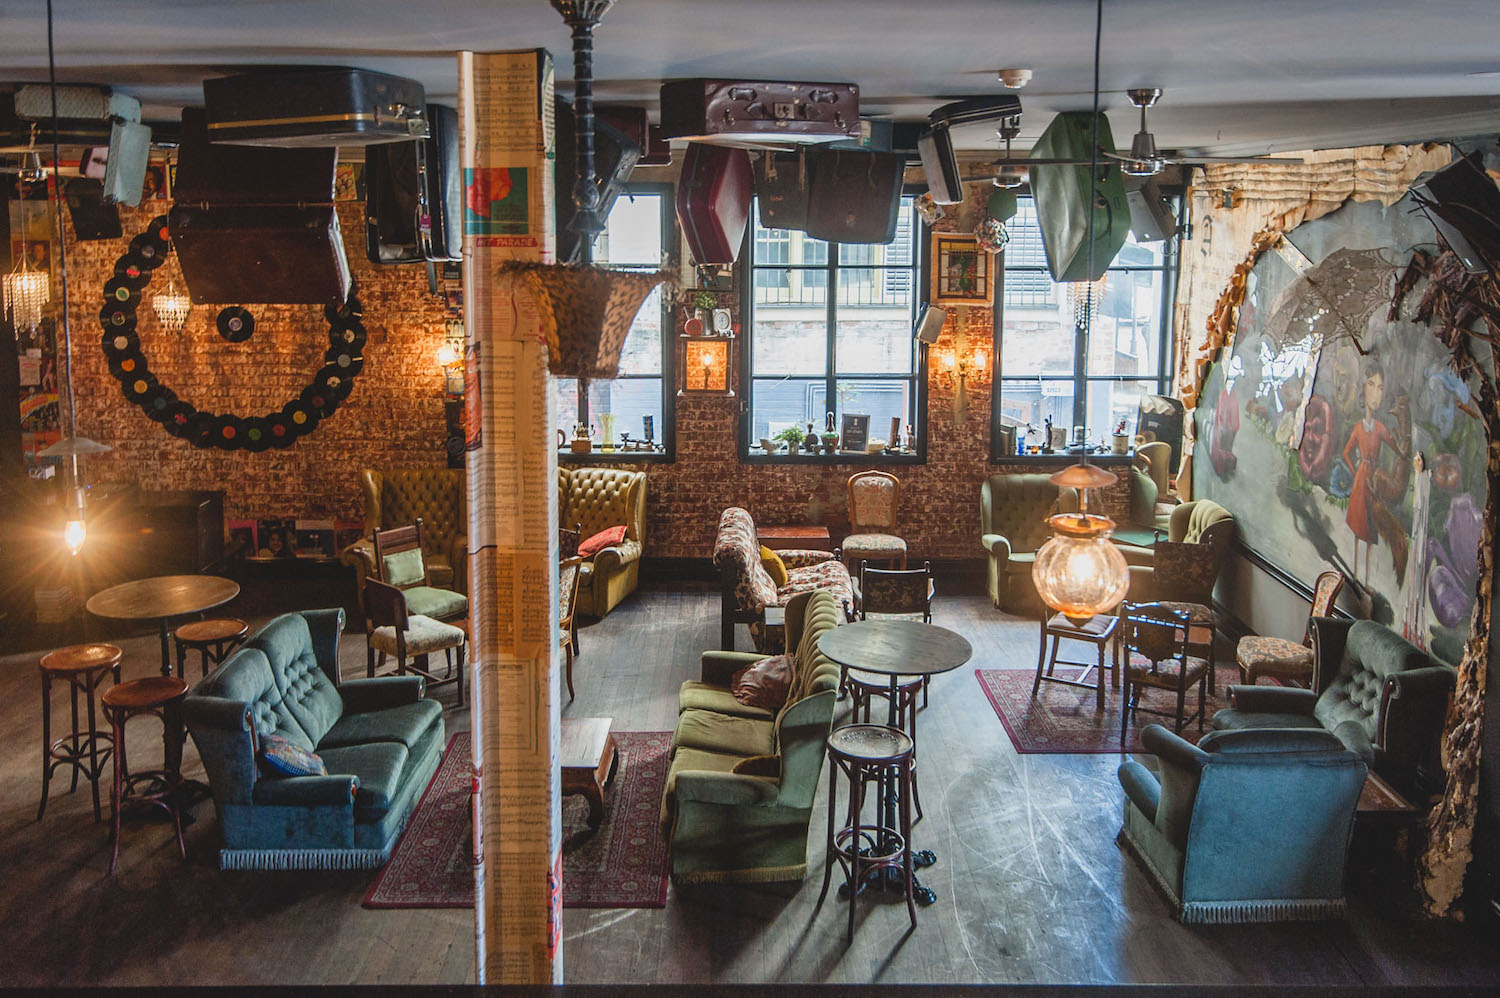 Superior Work Christmas Party Ideas Perth Part - 8: If You Plan On Impressing Your Work Friends This Year, Wolf Lane Is The  Perfect Place To Hold Your Festive Function. Hidden Down An Inner City  Alleyway, ...